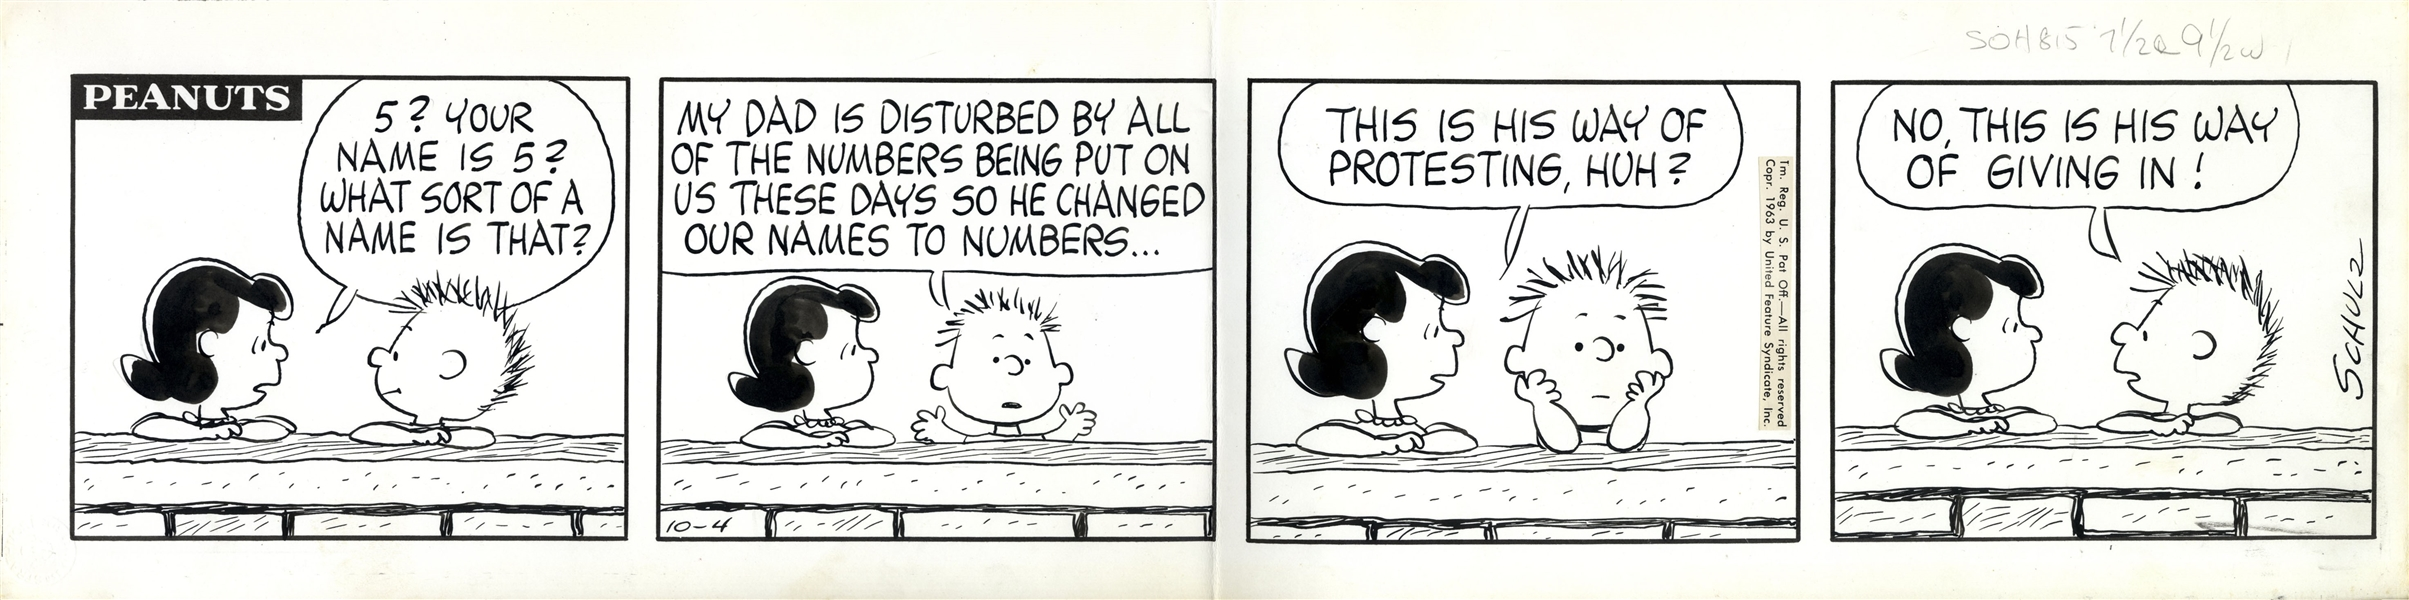 Charles Schulz Hand-Drawn Comic Strip From October 1963 -- The First Appearance of Character ''555 95472'', Schulz's Tongue-in-Cheek Protestation of Zip Codes & 7 Digit Phone #'s